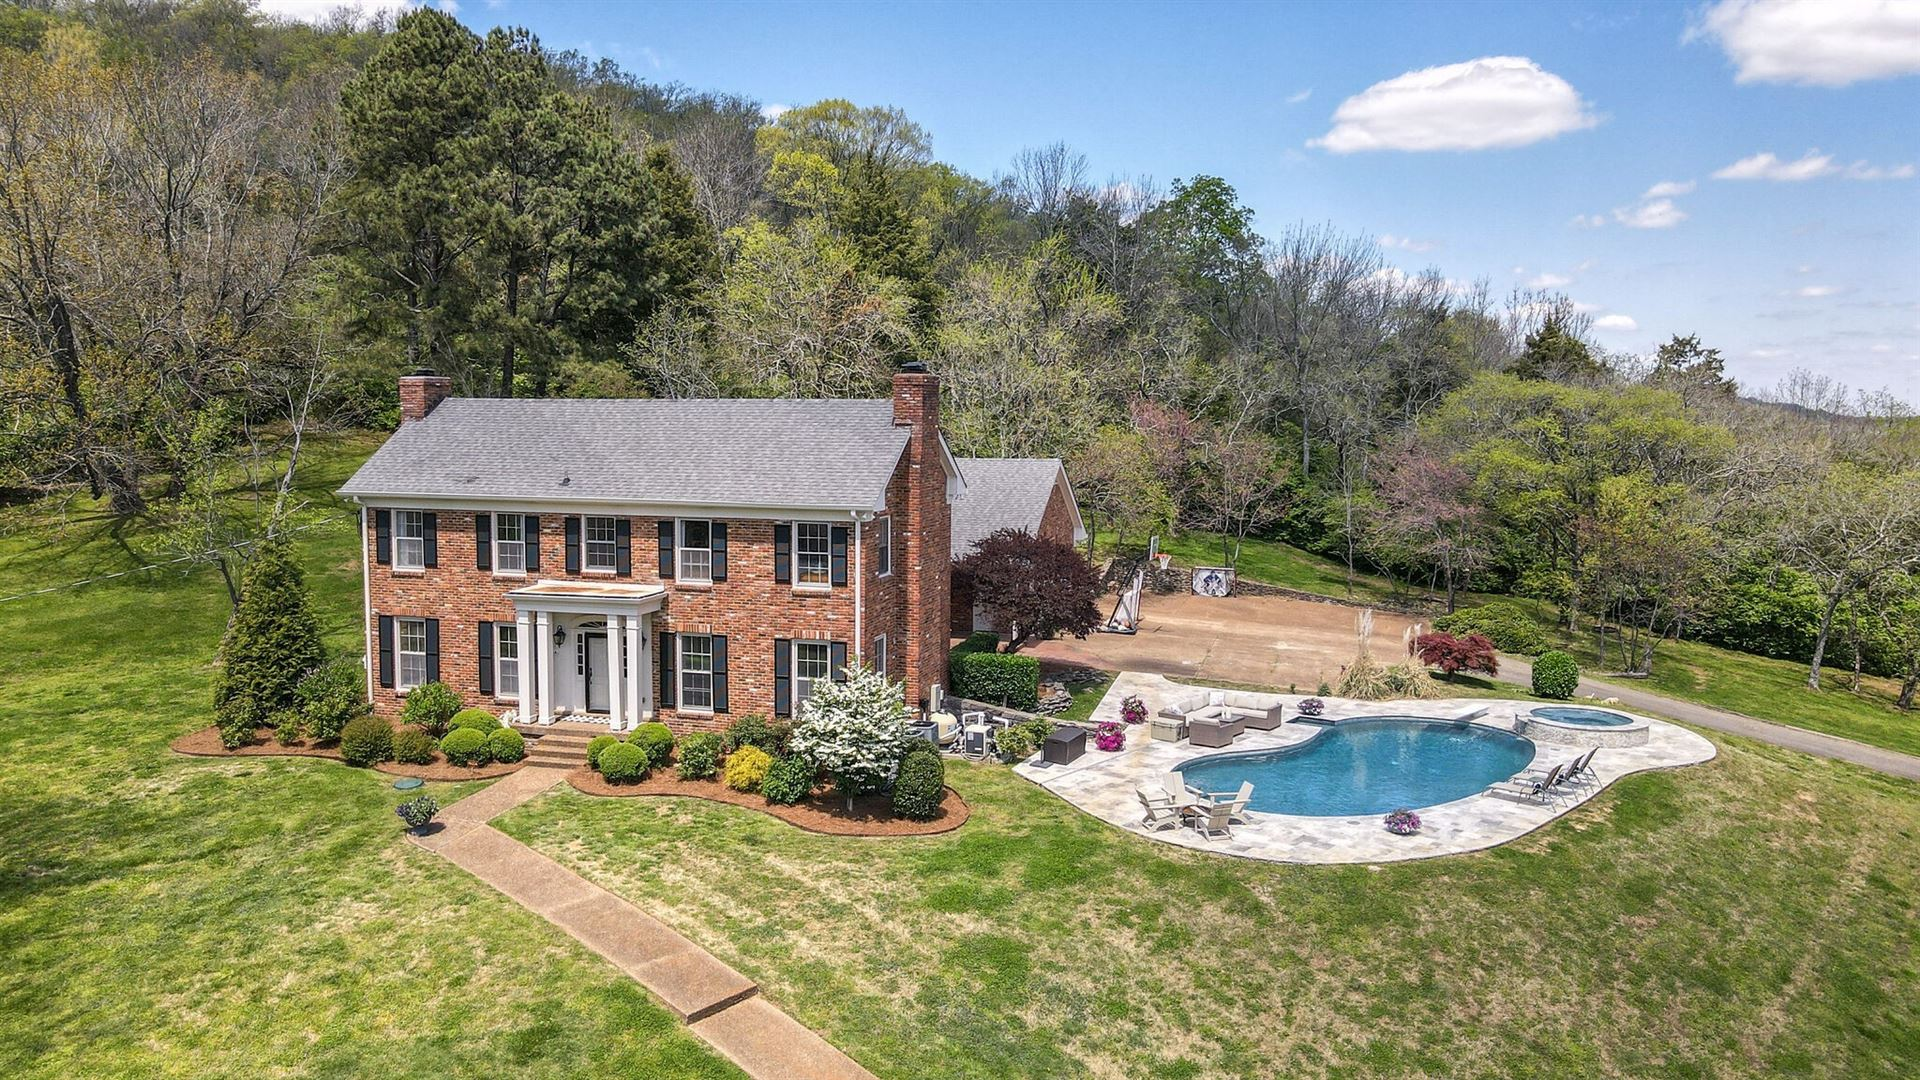 Photo of 192 Hillhaven Ln, Franklin, TN 37064 (MLS # 2253251)